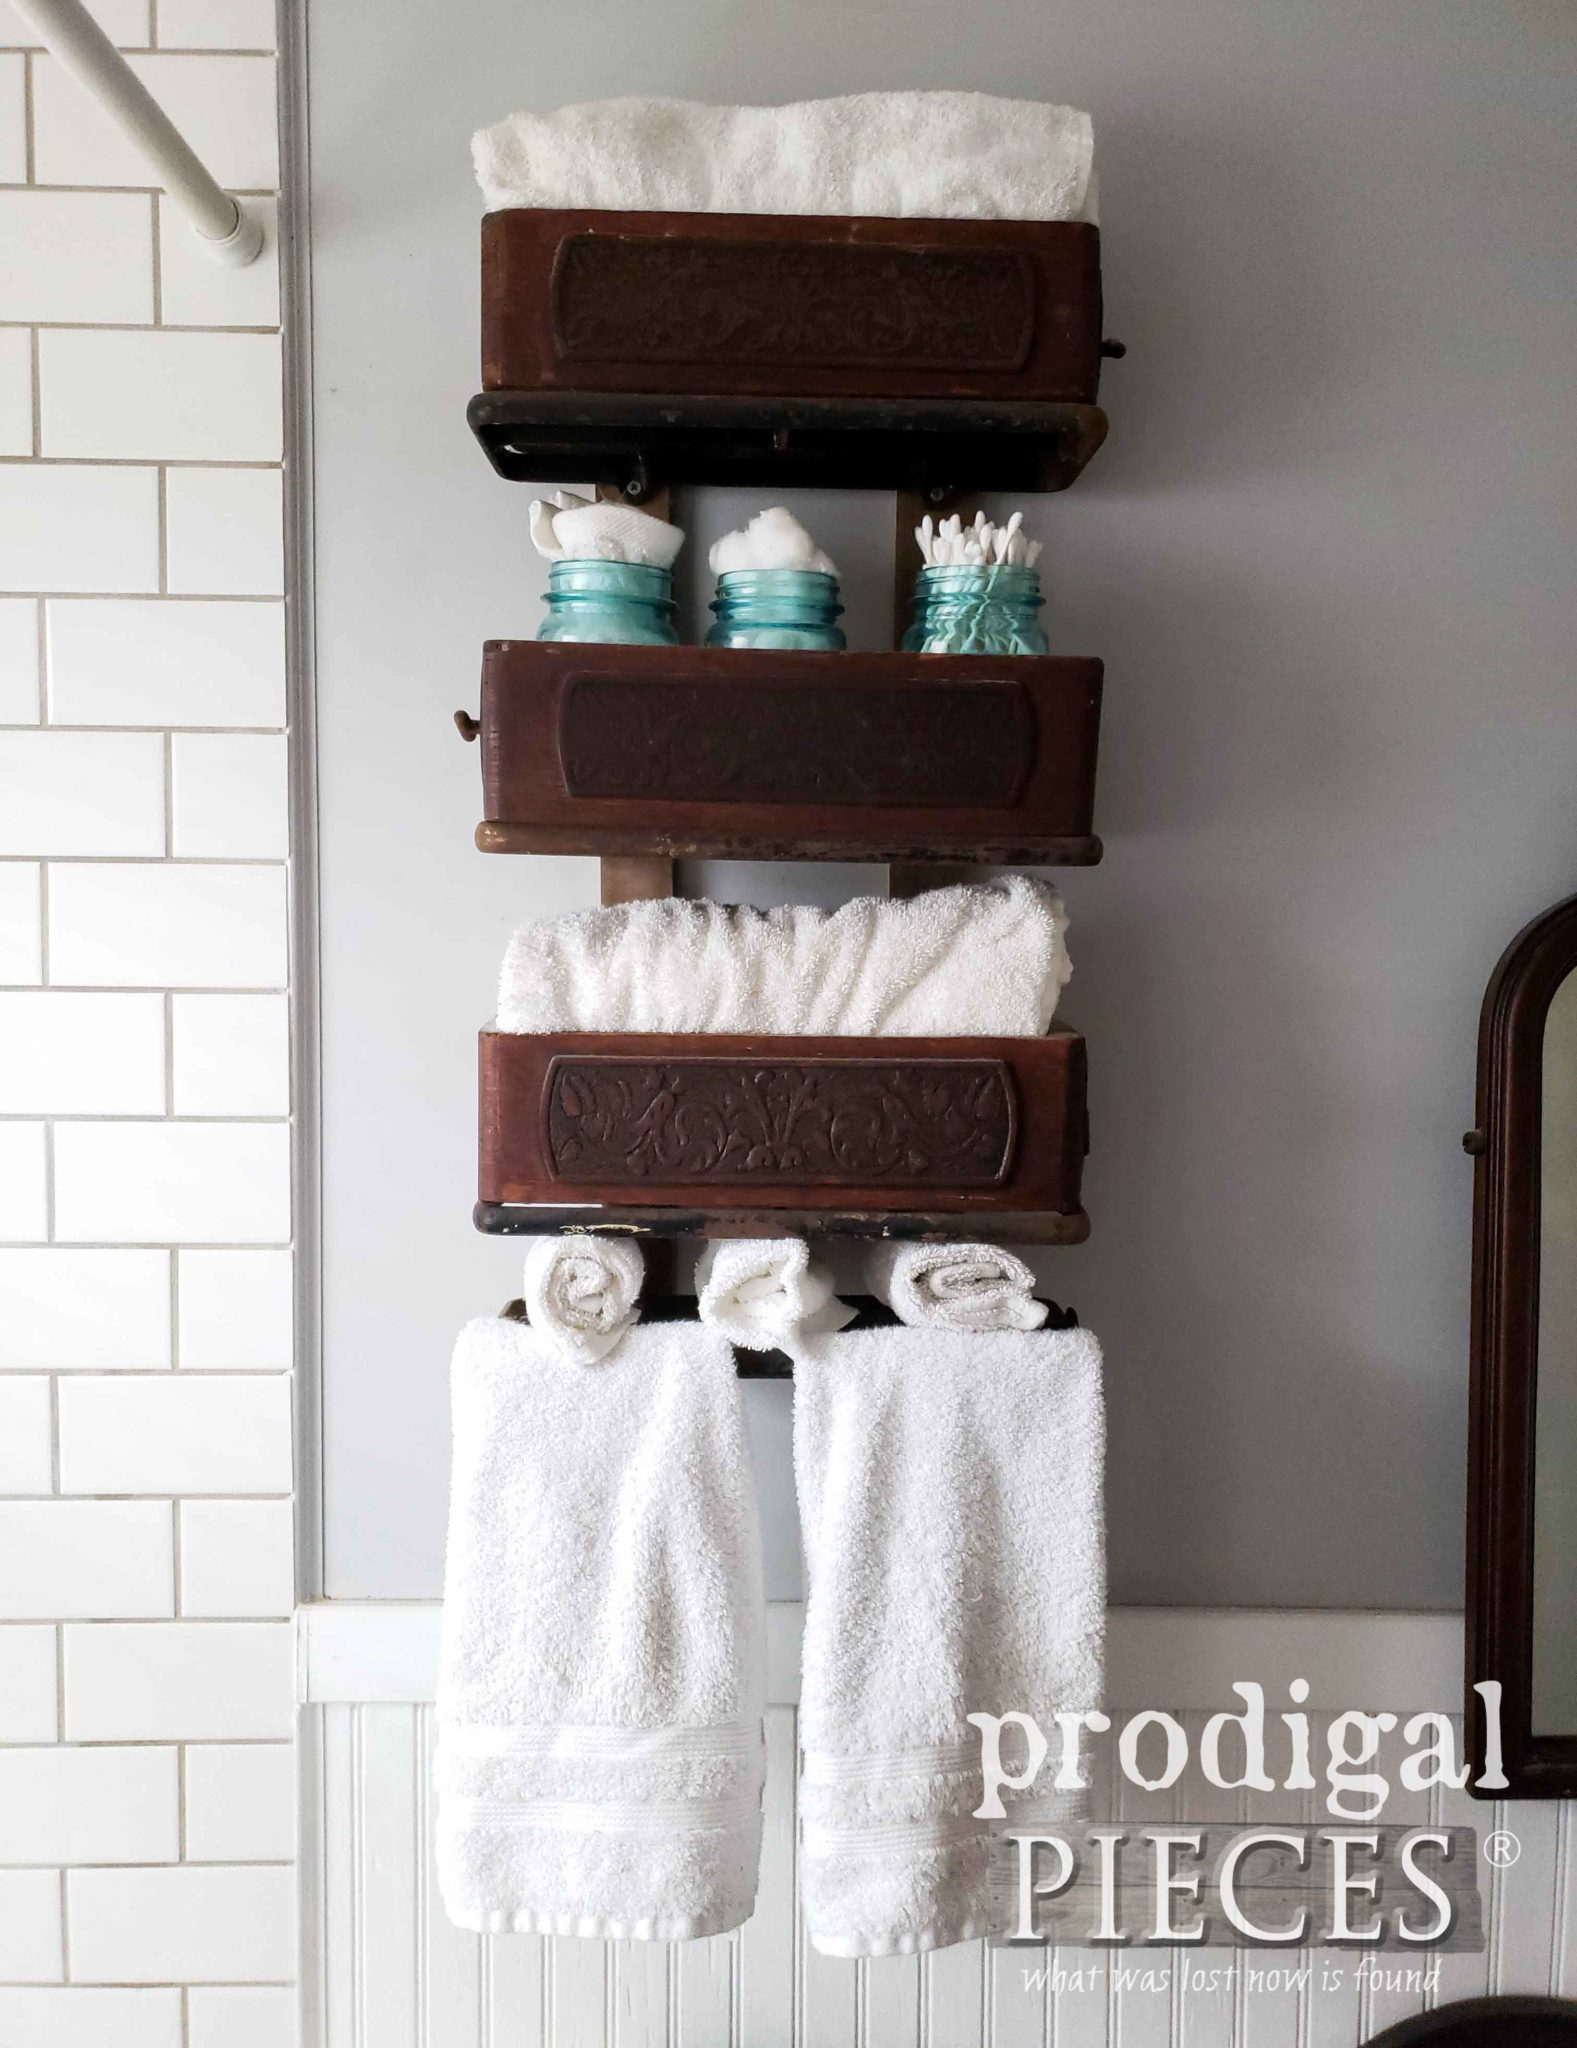 Upcycled Bathroom Storage from Treadle Sewing Machine Parts by Prodigal Pieces | prodigalpieces.com